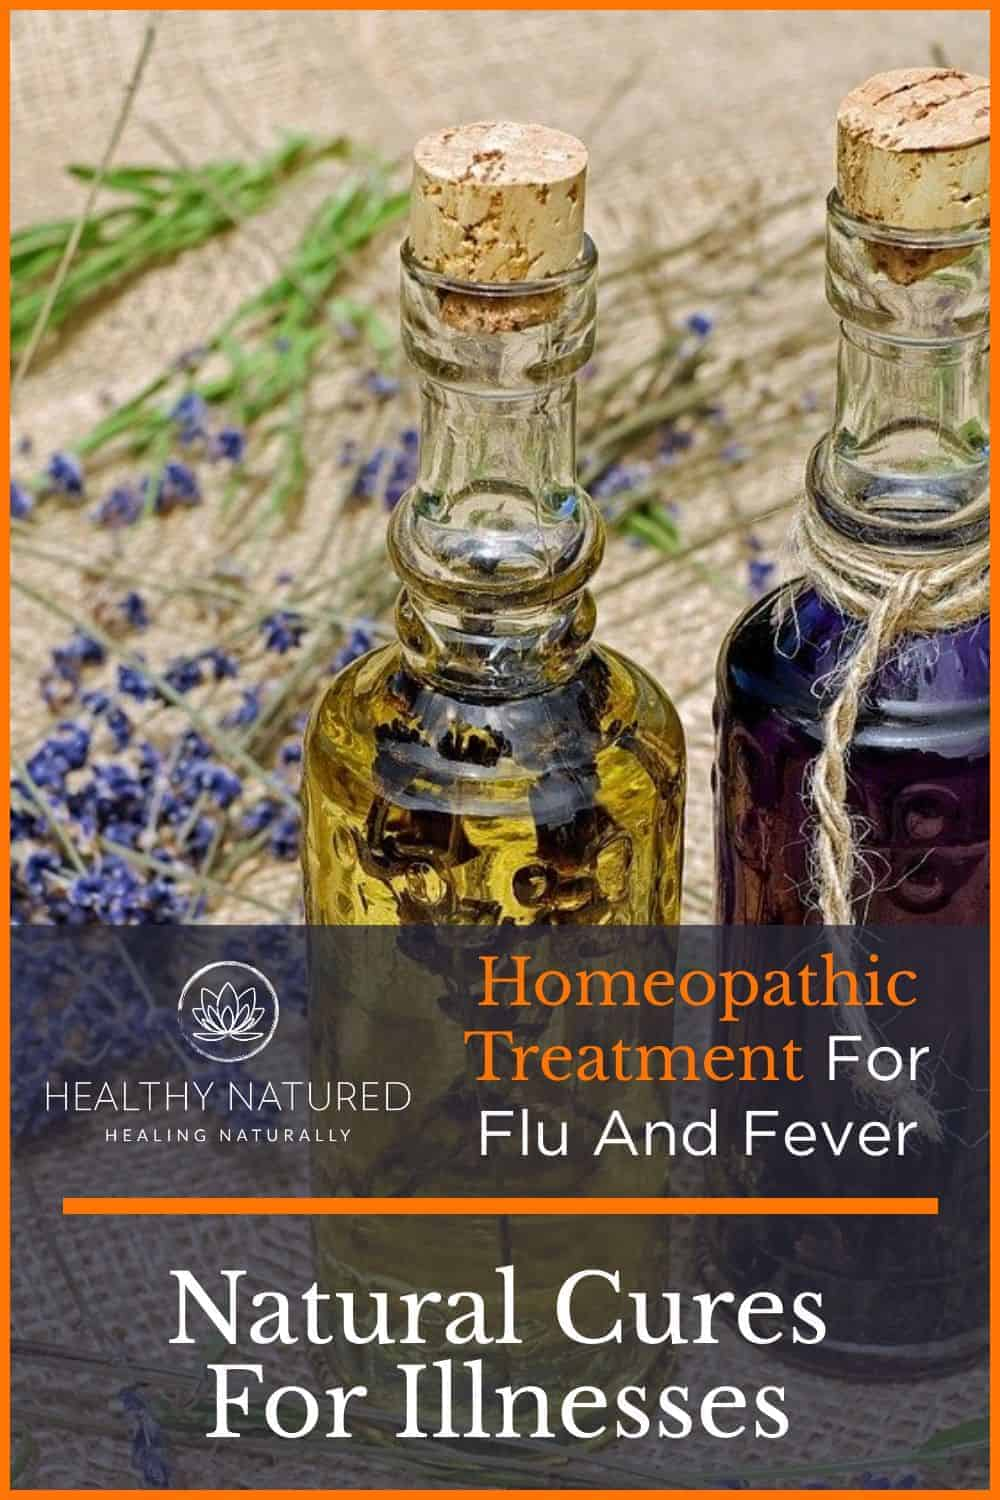 Natural Cures For Illnesses (Homeopathic Treatment For Flu And Fever)